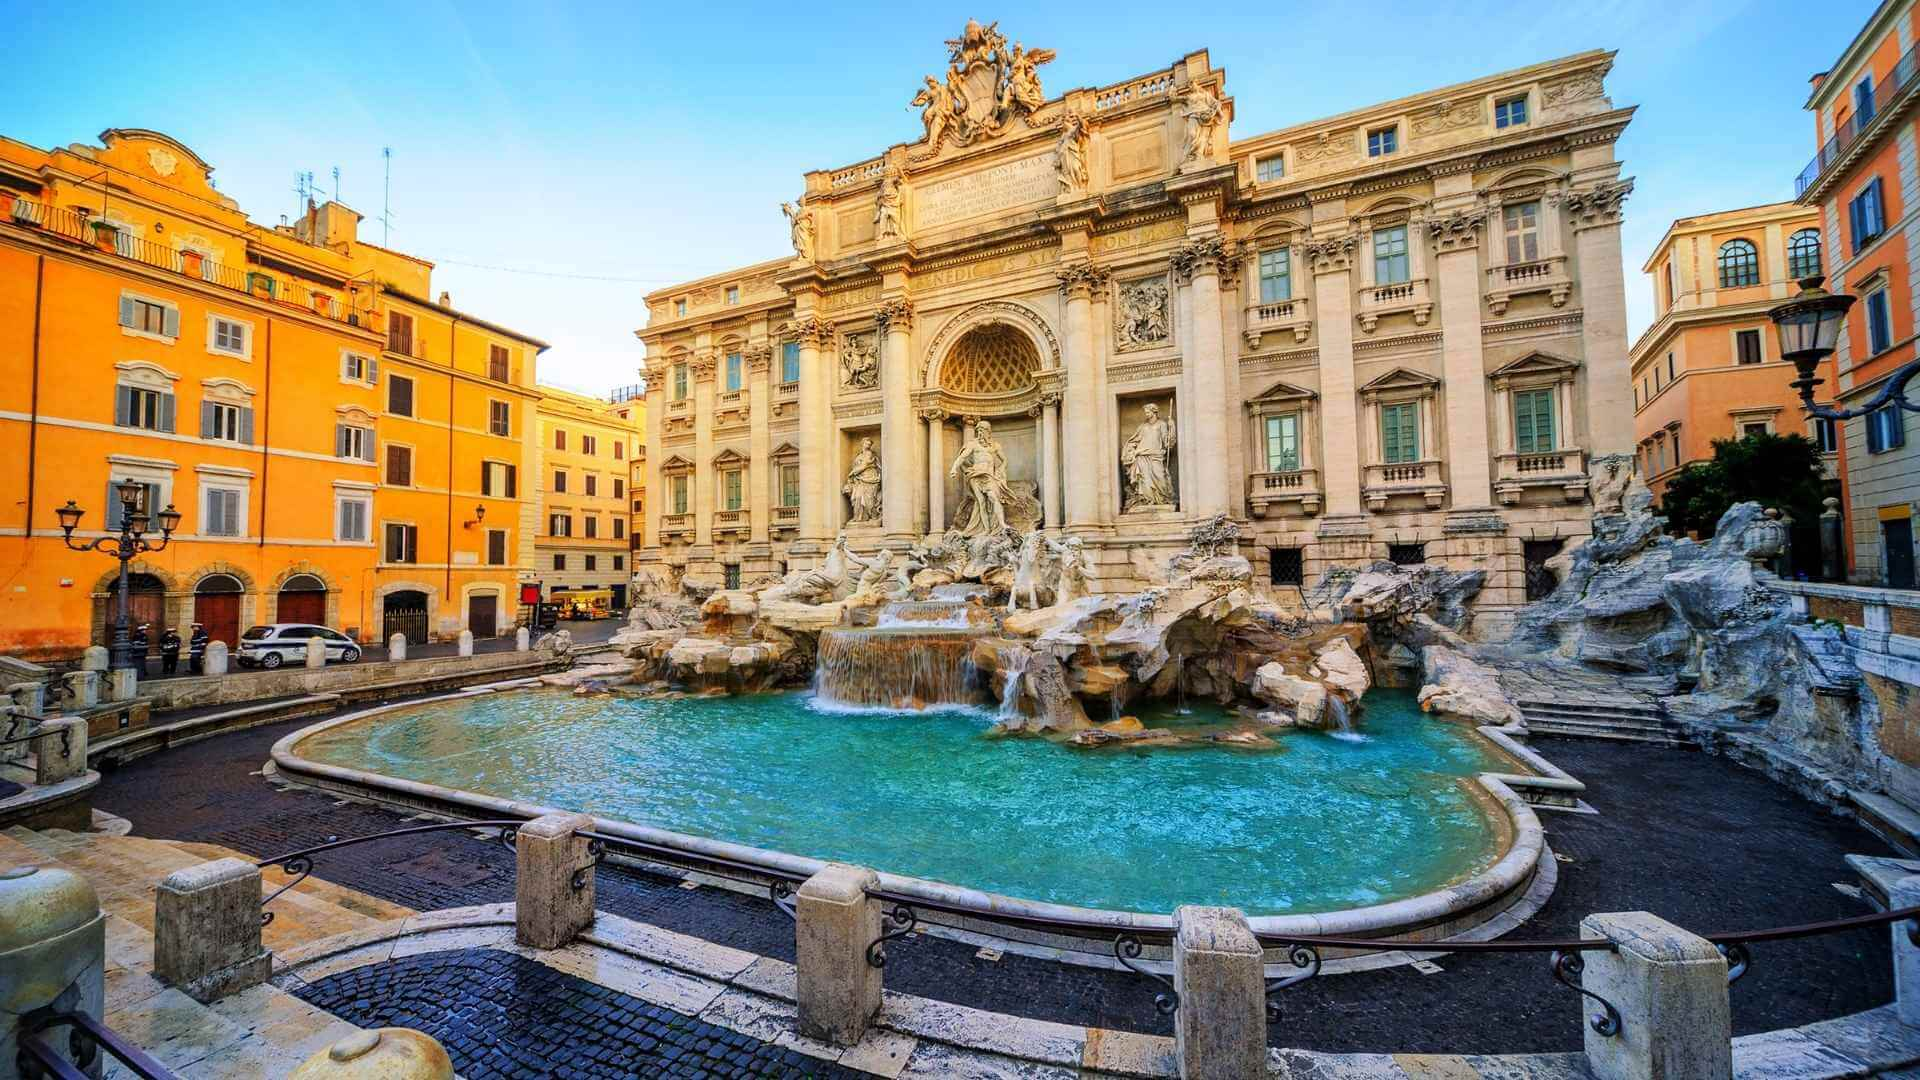 Italy has postponed its e-document legislation until 1 January 2022. Metadata requirements have also been modified.